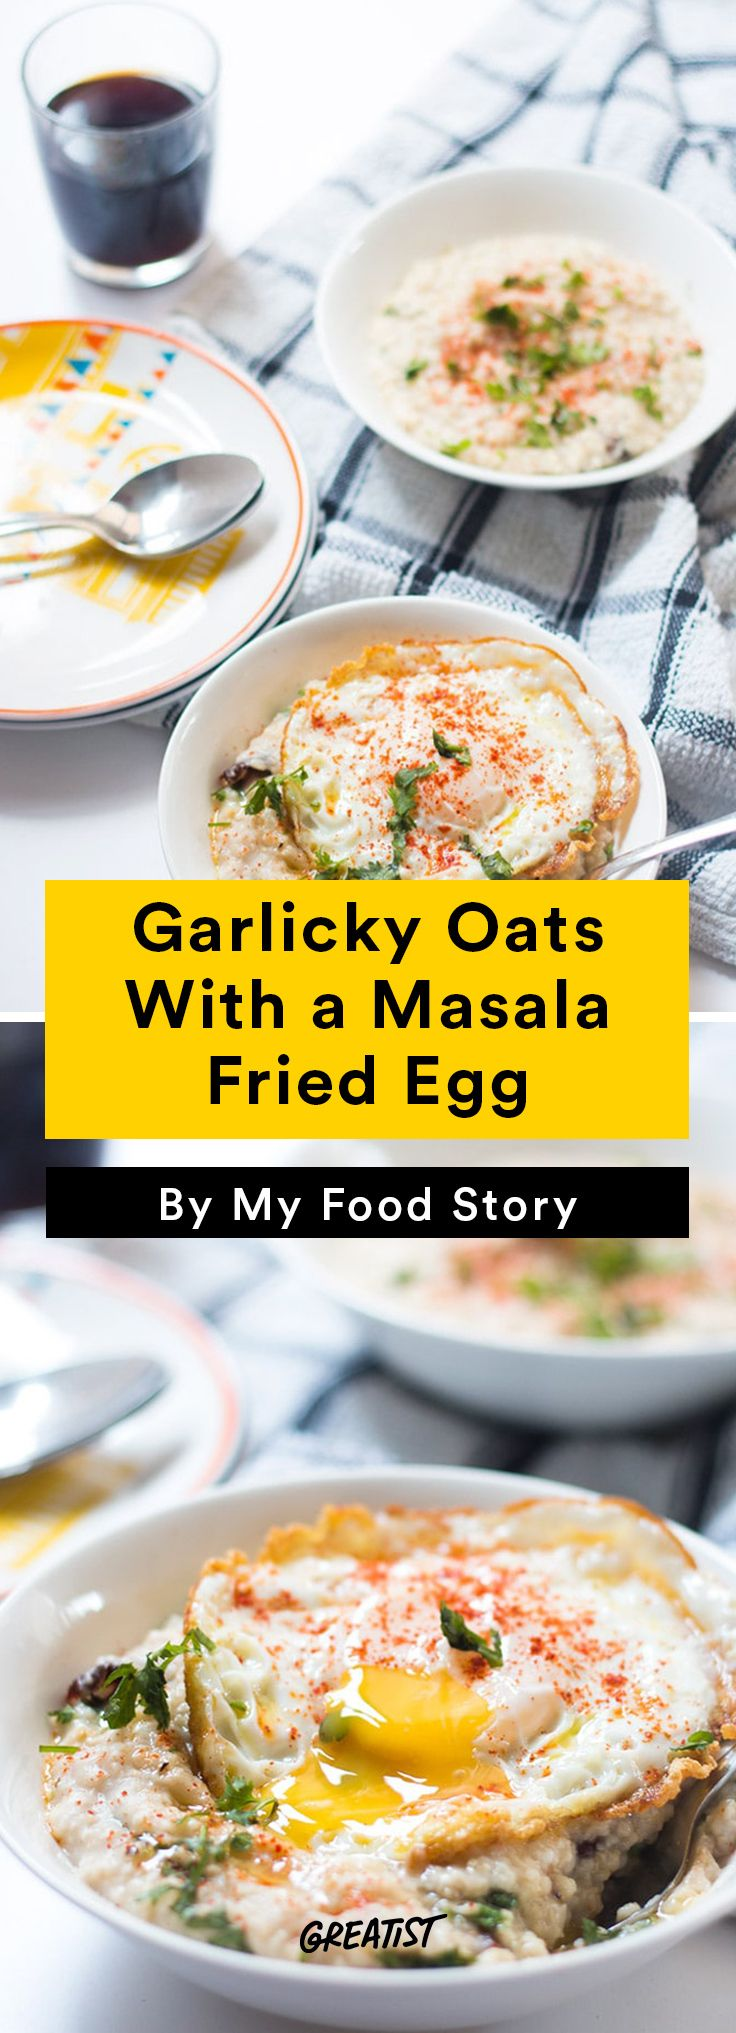 6. Garlicky Oats With a Masala Fried Egg #savory #oatmeal #recipe http://greatist.com/eat/oatmeal-recipes-that-are-savory-not-sweet